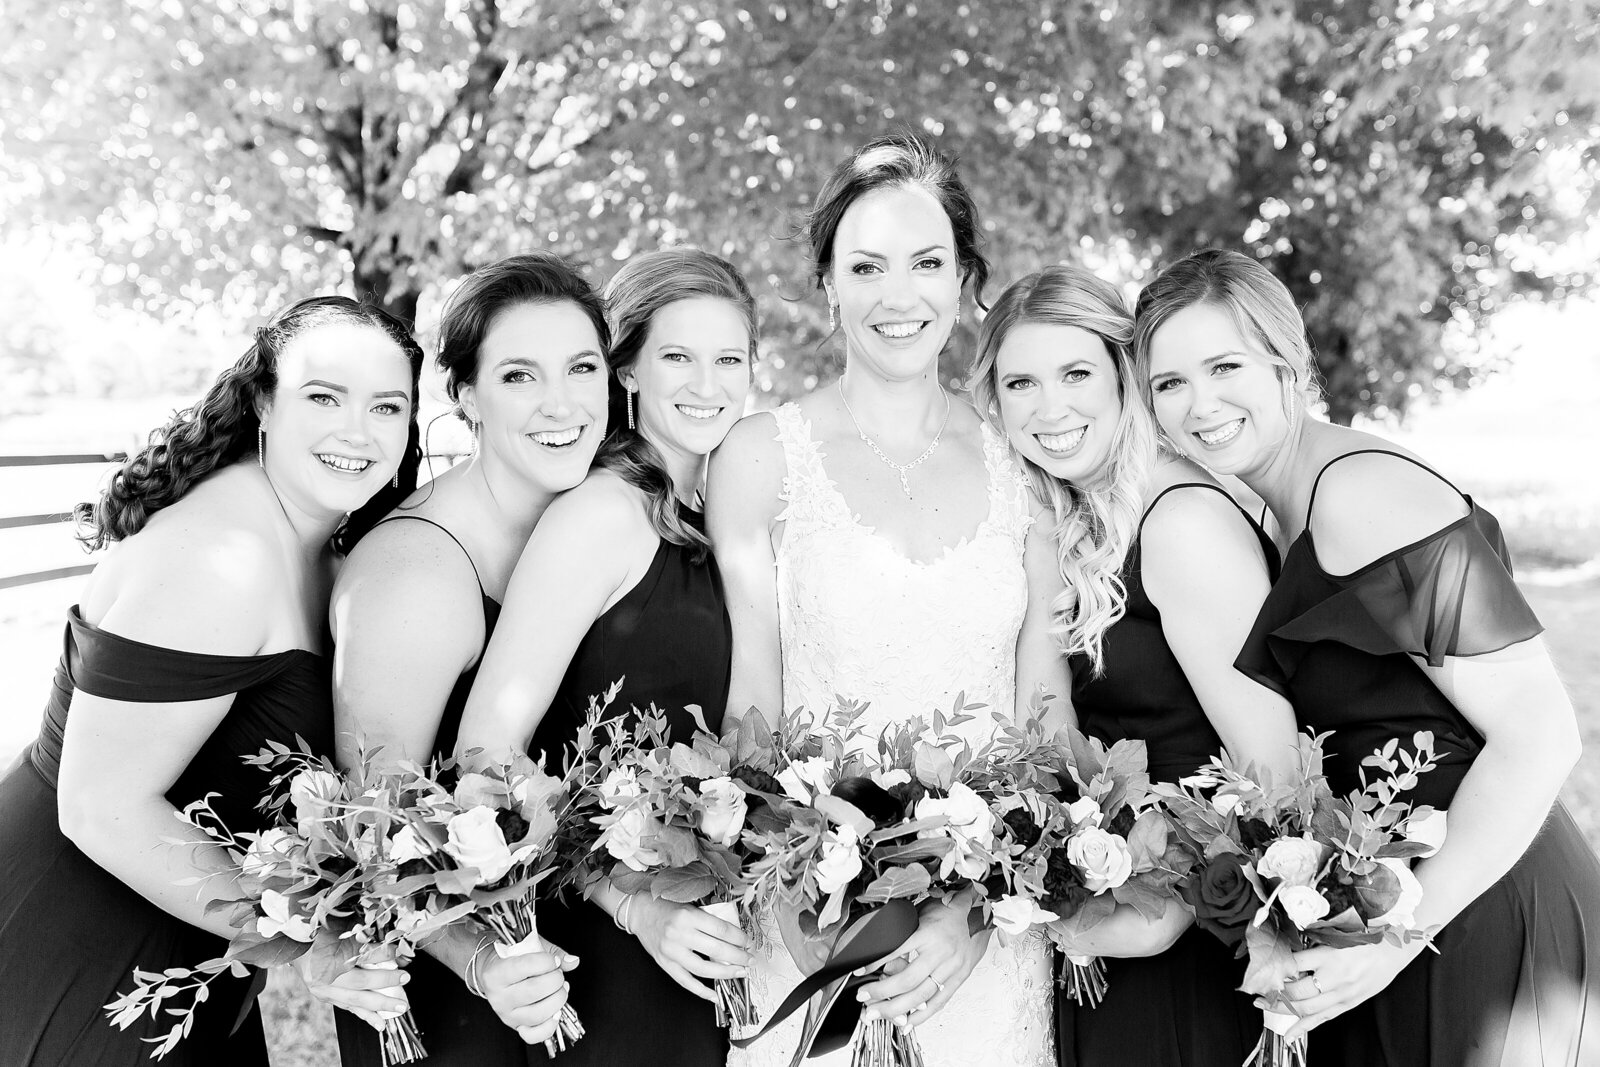 Ambrose-WeddingParty-29-BW